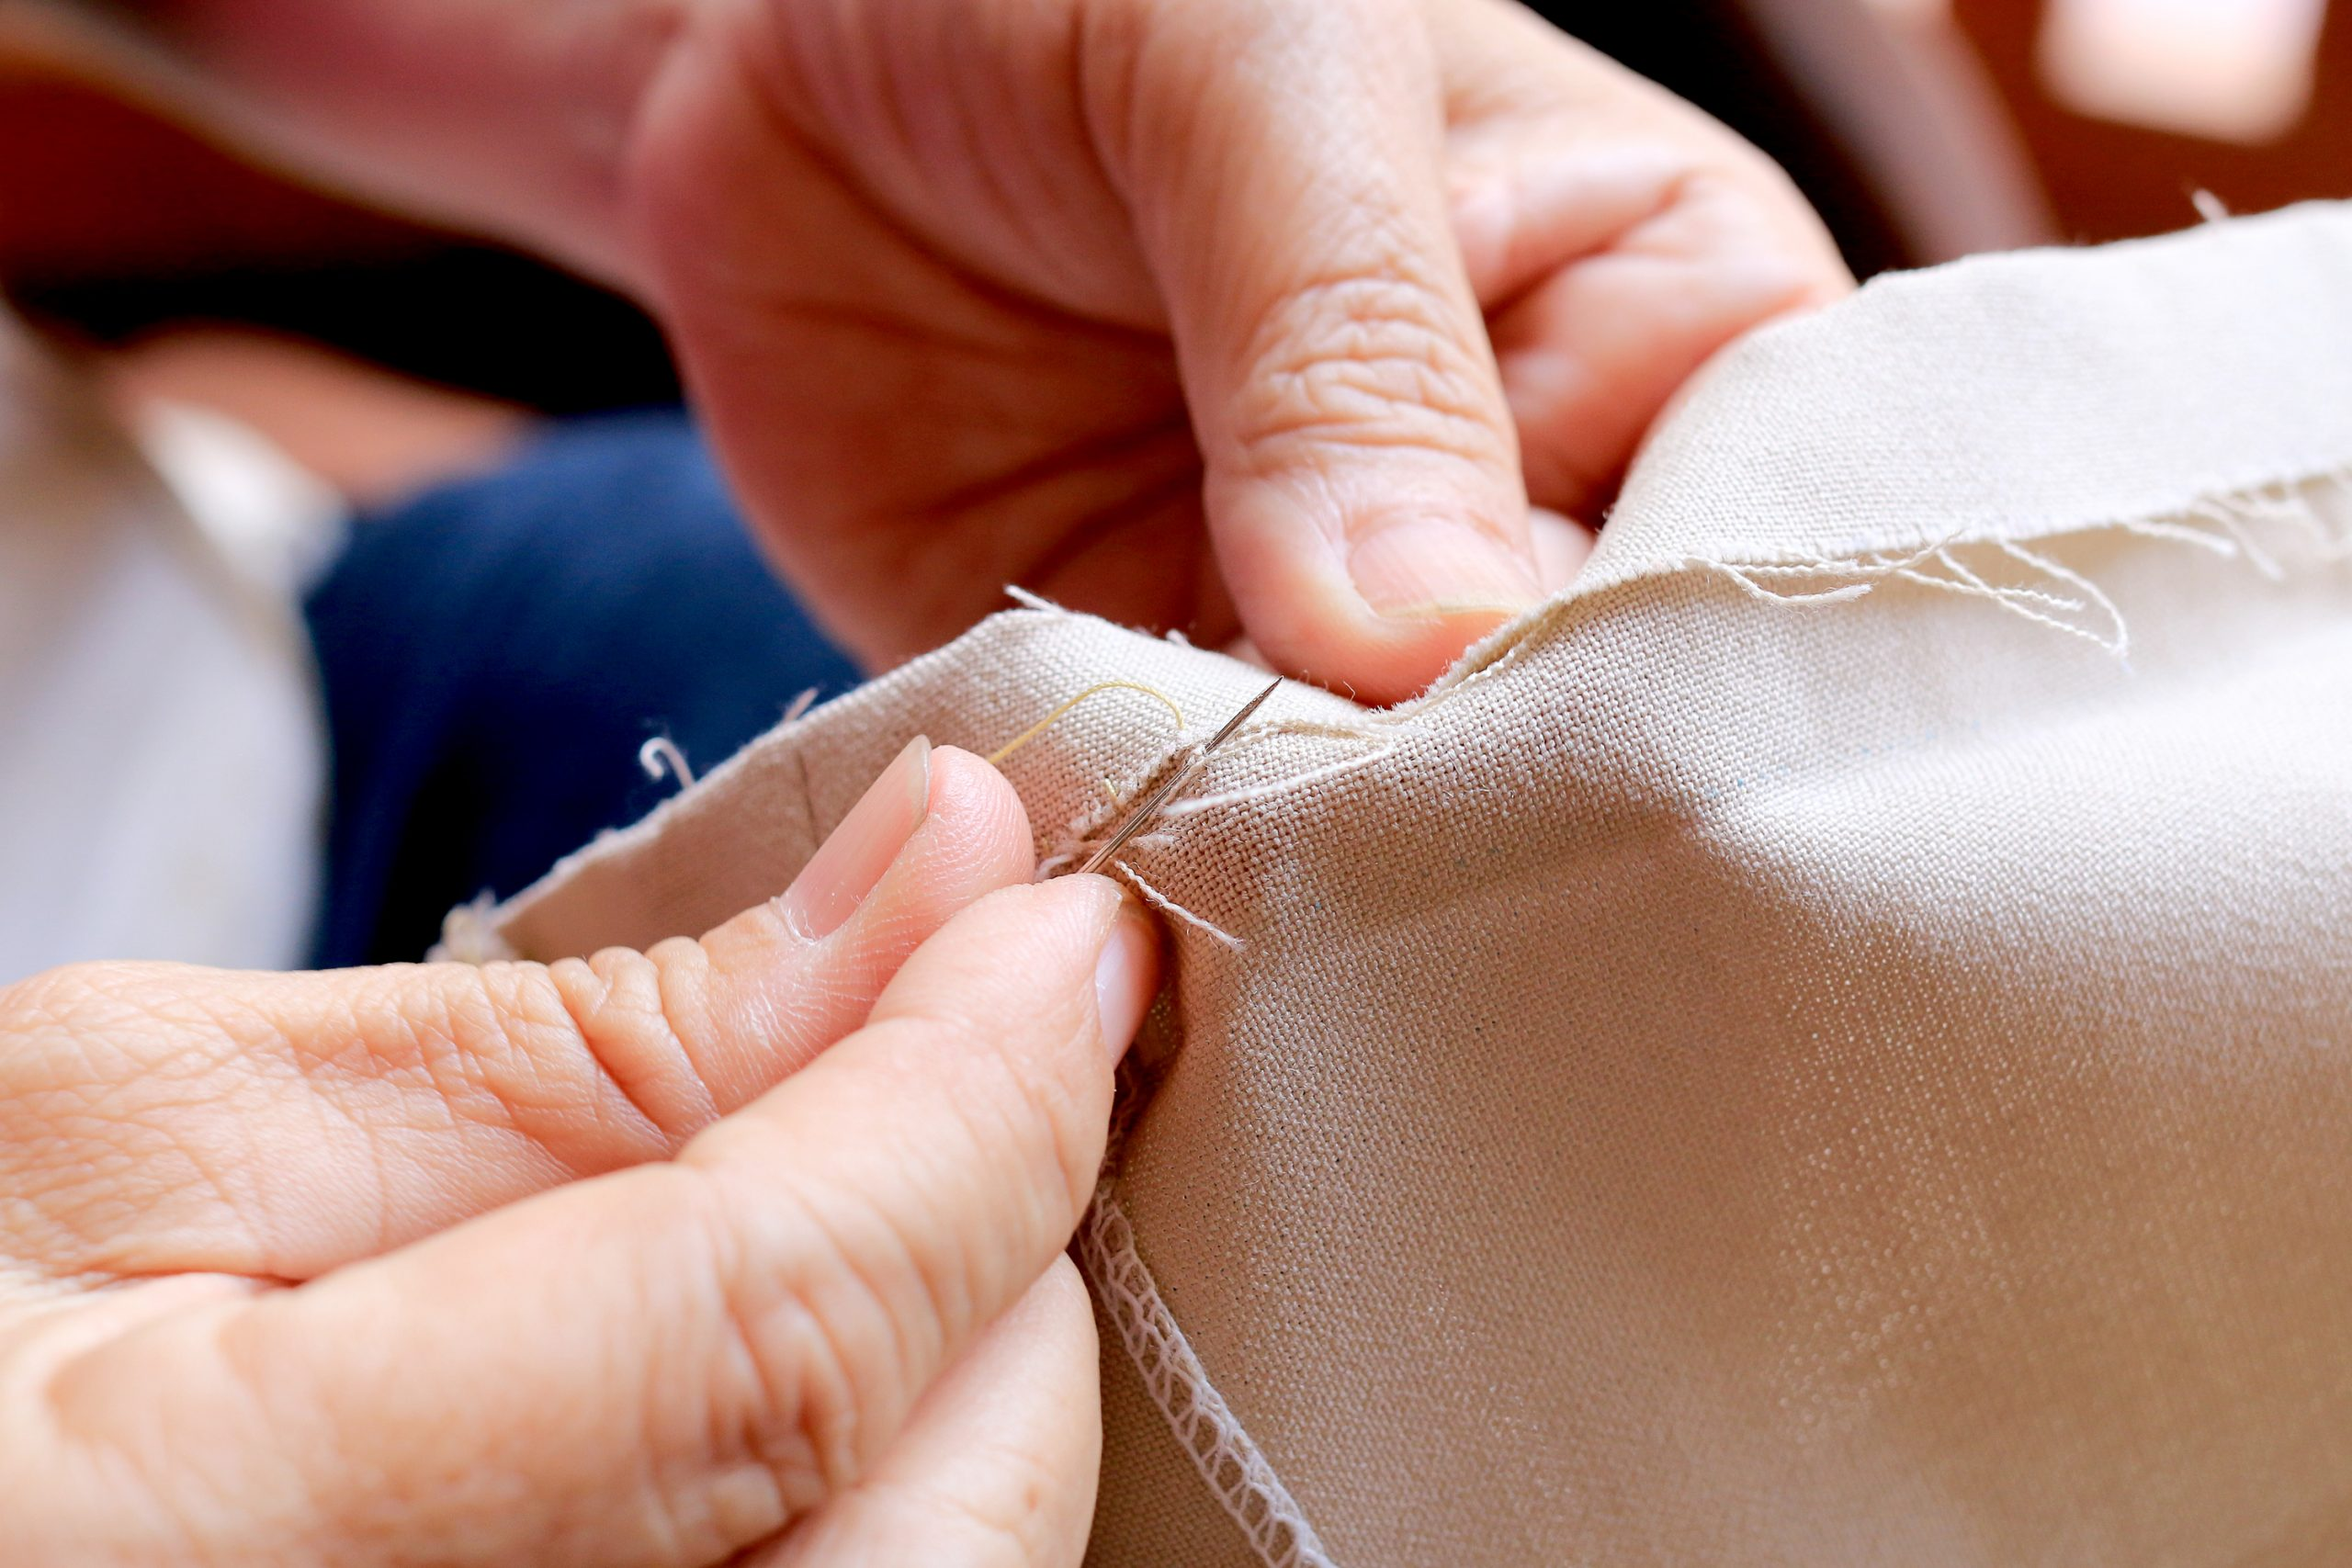 hand sewing a edge on fabric